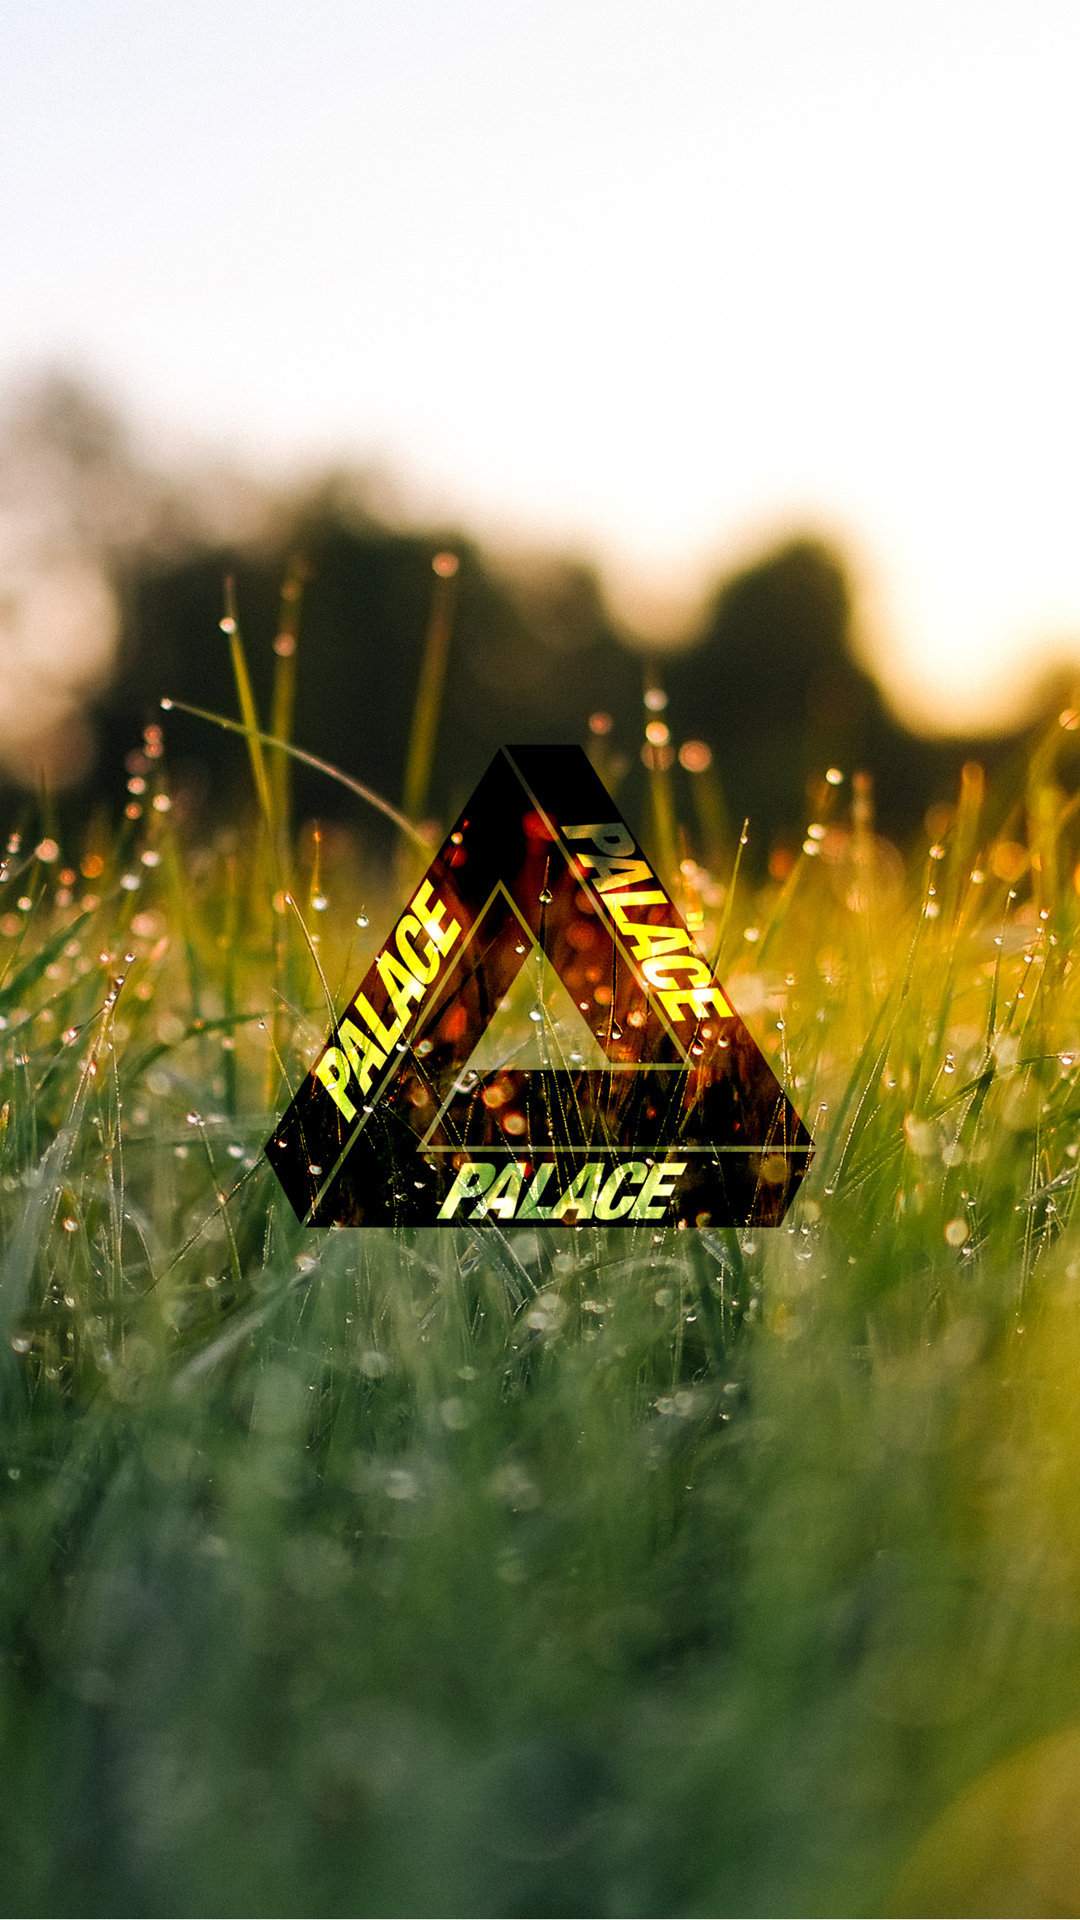 Palace Wallpaper - Backgrounds Yellow And Green Nature Aesthetic - HD Wallpaper